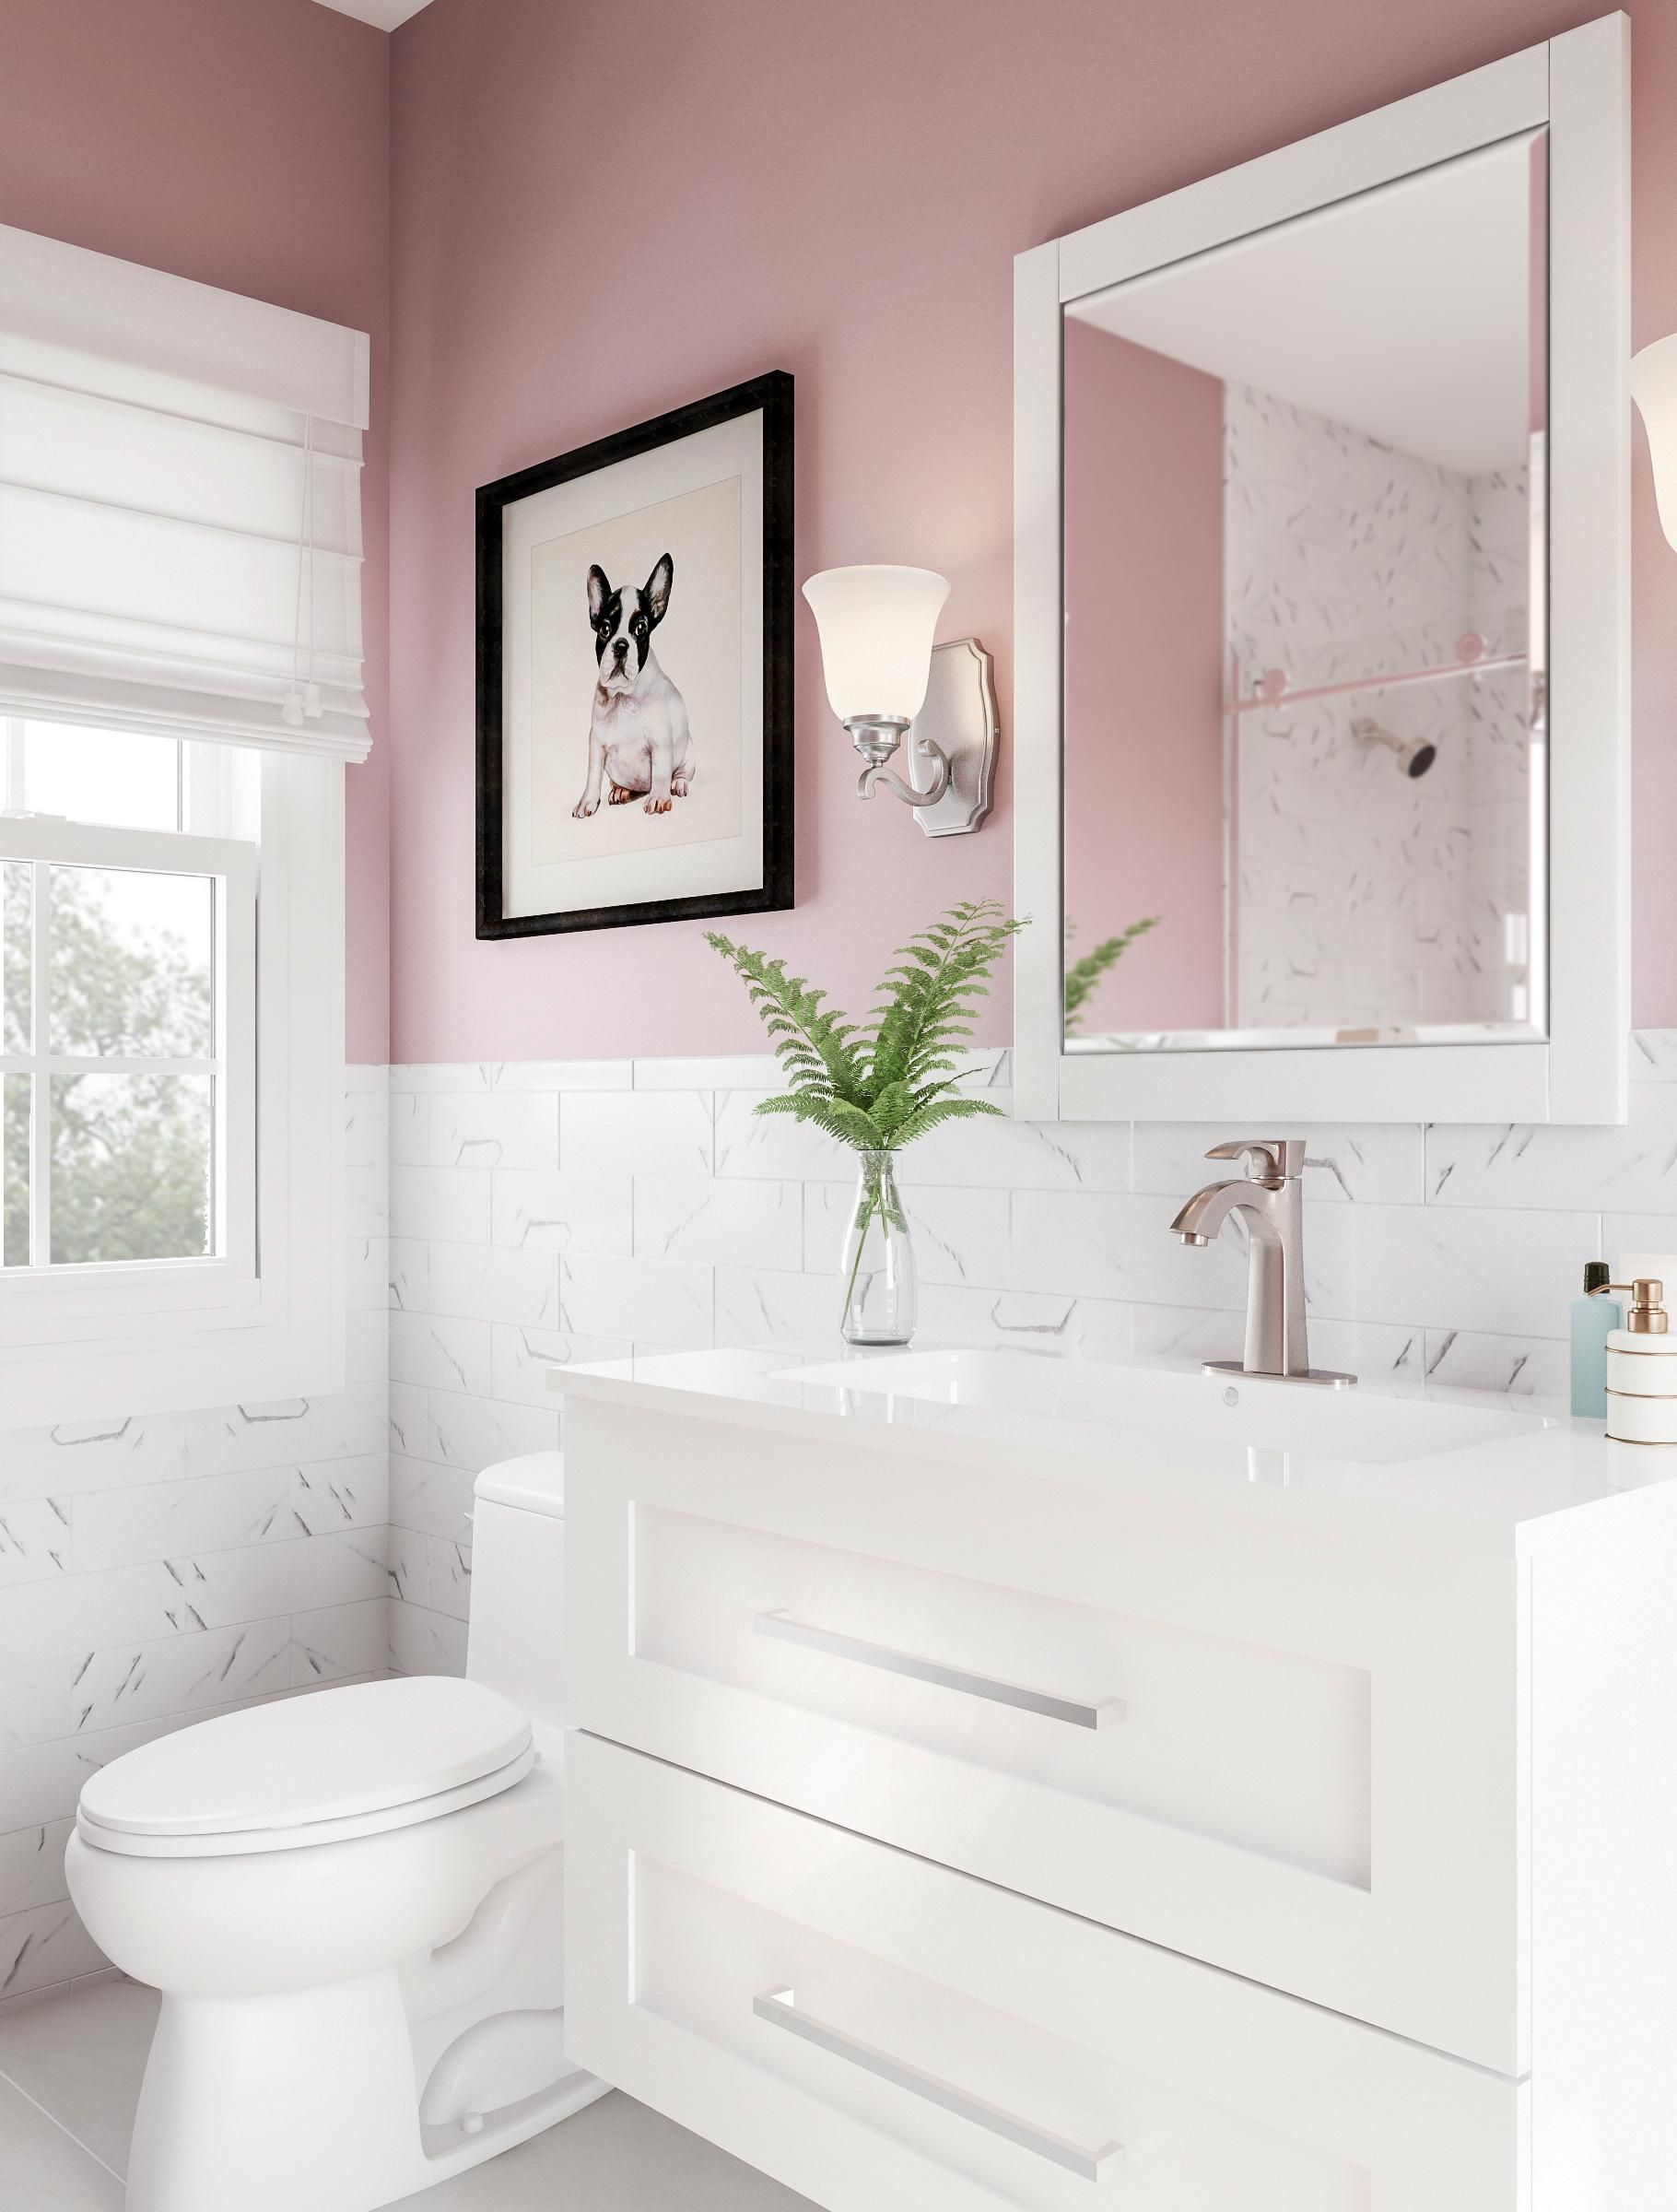 Get Grown Up With Pink Paint The Walls Of Your Bathroom This Rosy